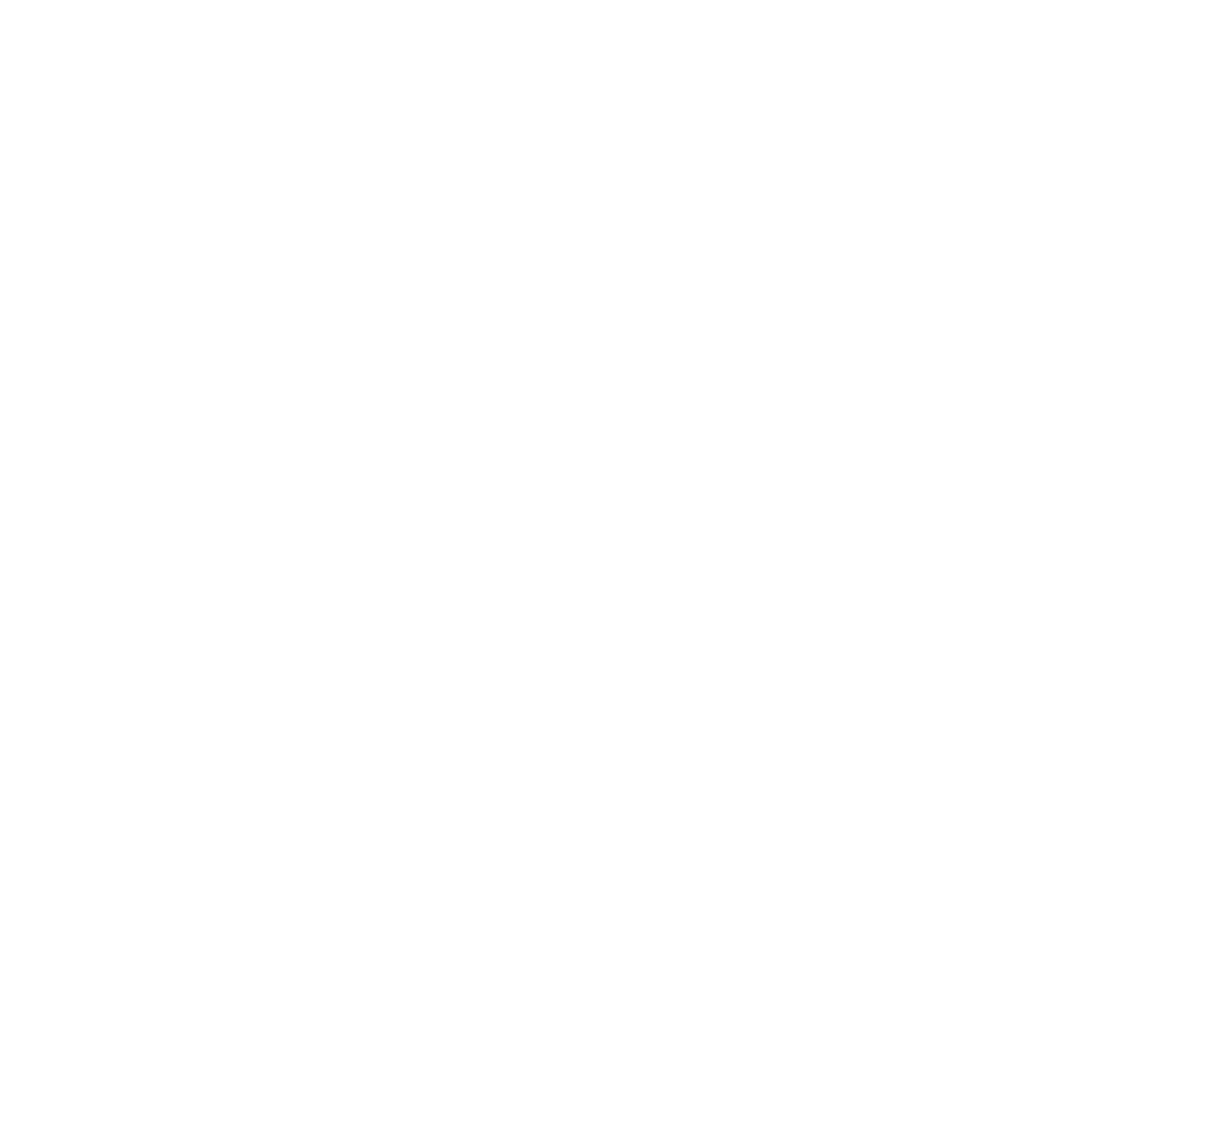 man with clock icon representing flexible working benefits